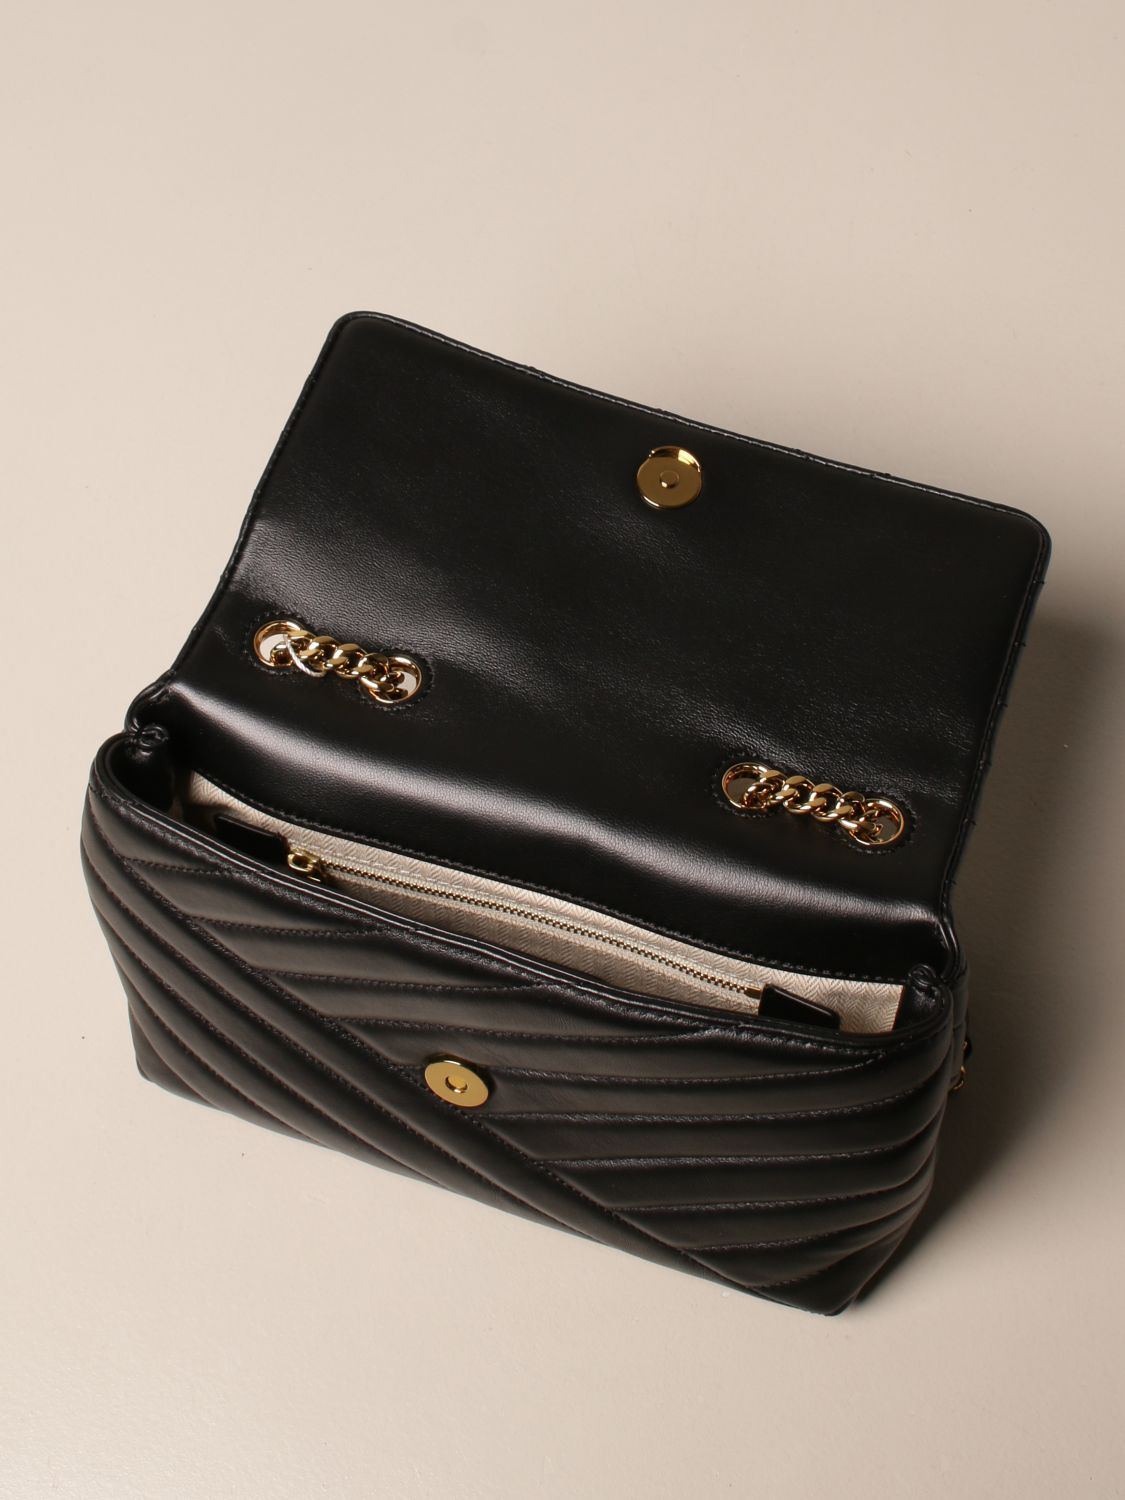 Crossbody bags Tory Burch: Kira Tory Burch bag in quilted leather black 5